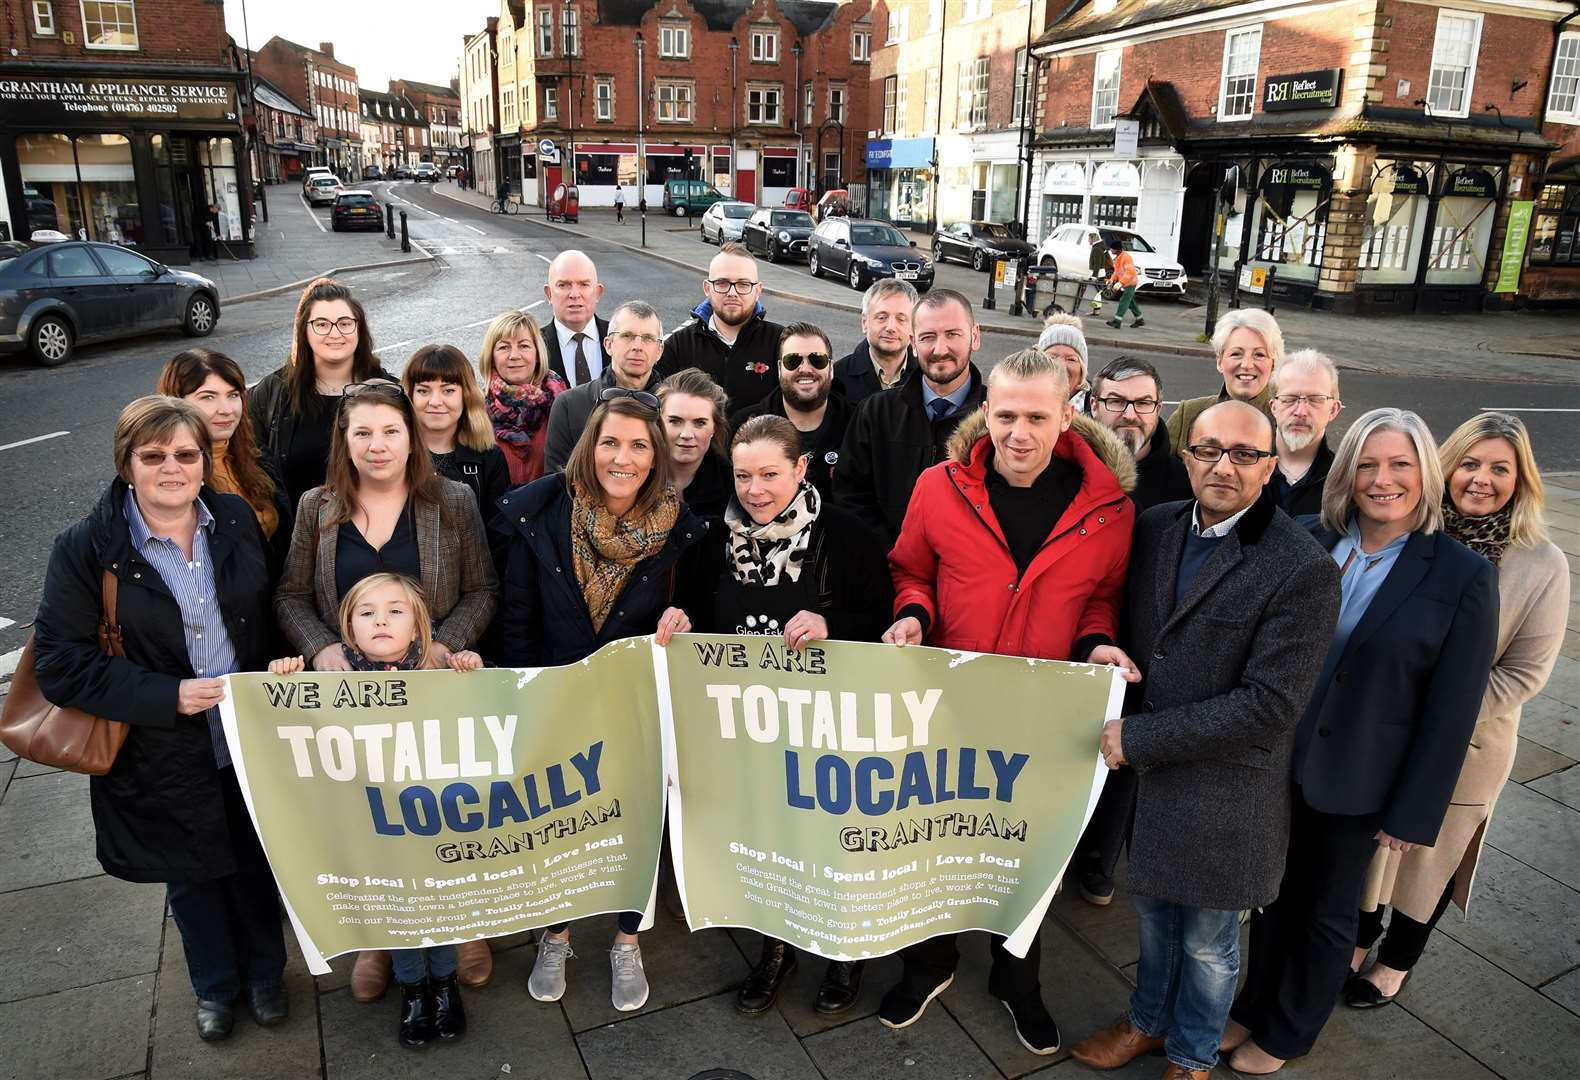 More and more businesses are joining Totally Locally Grantham to boost our town